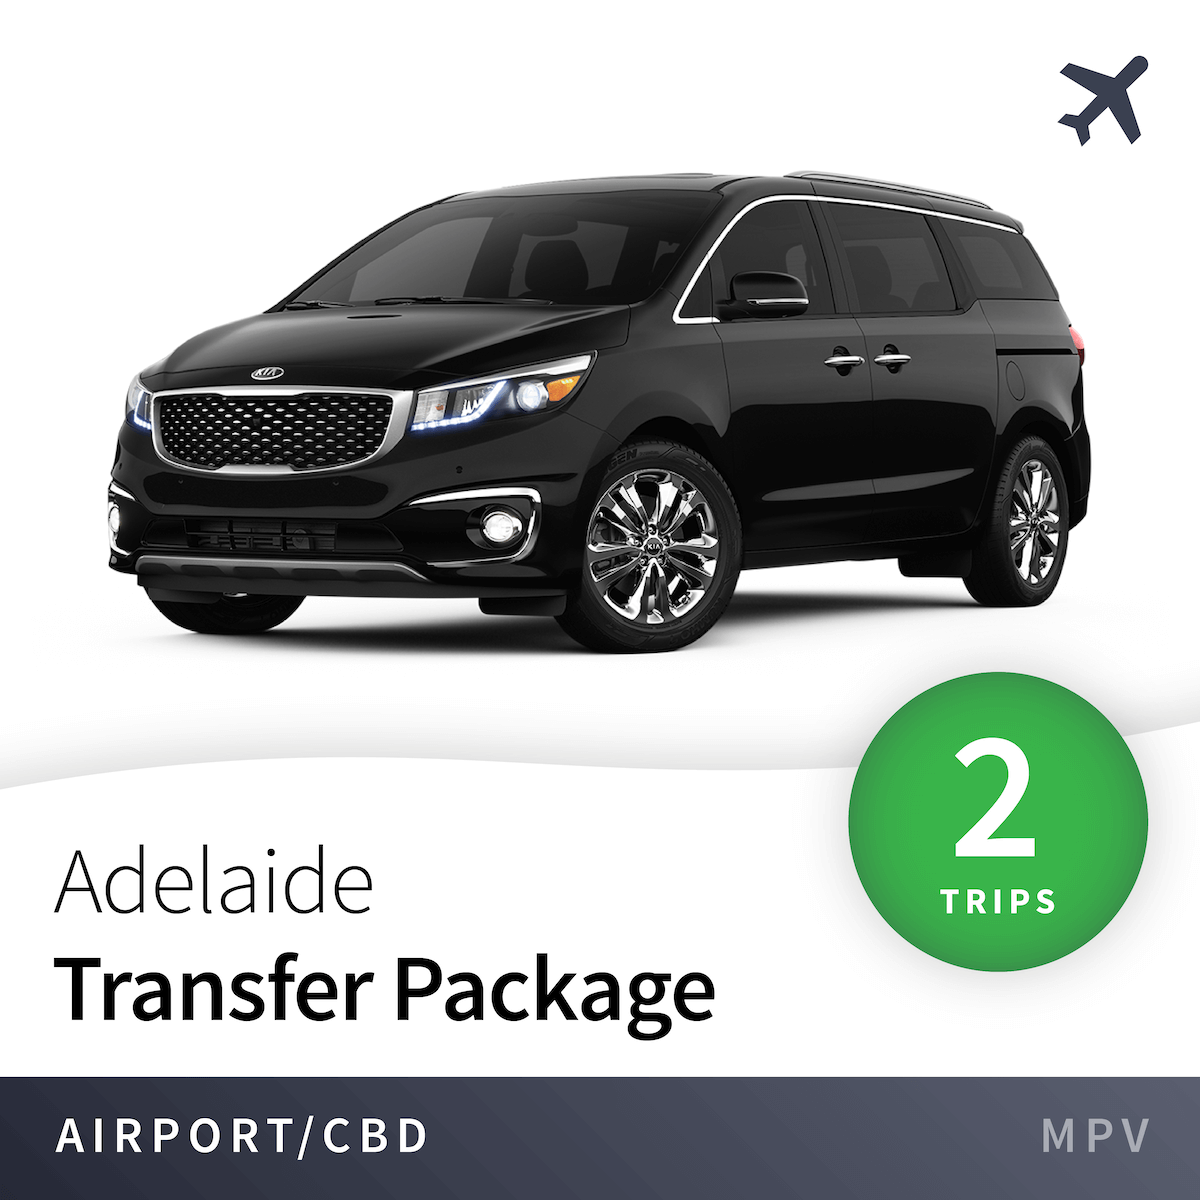 Adelaide Airport Transfer Package - MPV (2 Trips) 3